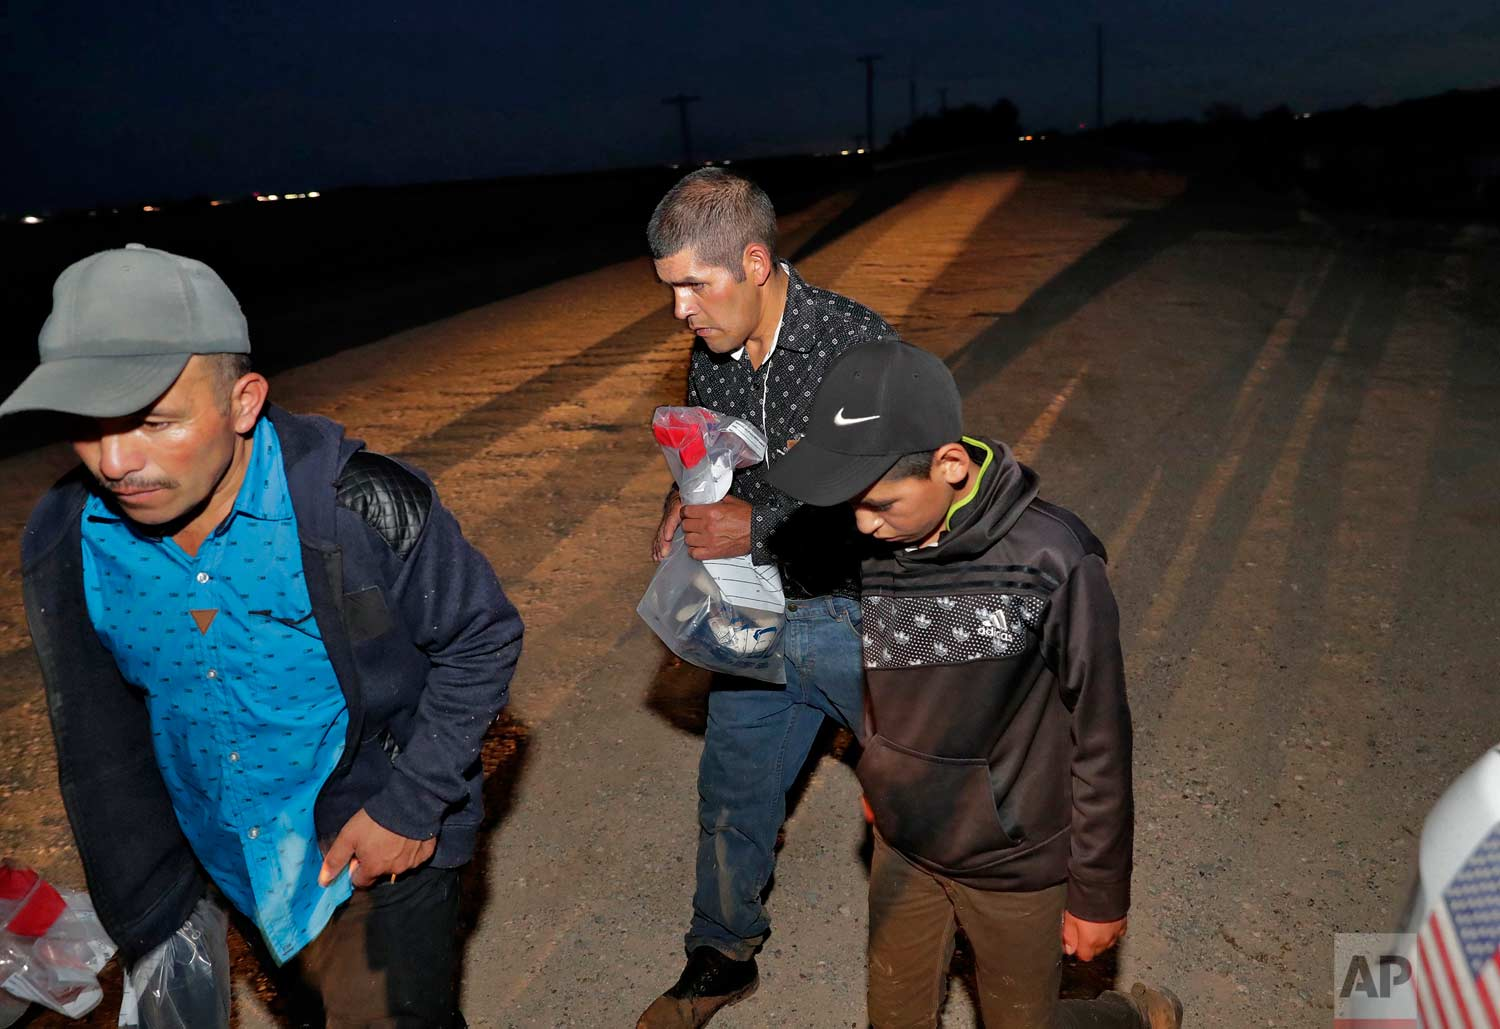 Three of four arrested Guatemalan nationals, two men and a 12-year-old boy, surrender to a U.S. Customs and Border Patrol agent, Wednesday, July 18, 2018 along the international border in Yuma, Ariz. (AP Photo/Matt York)